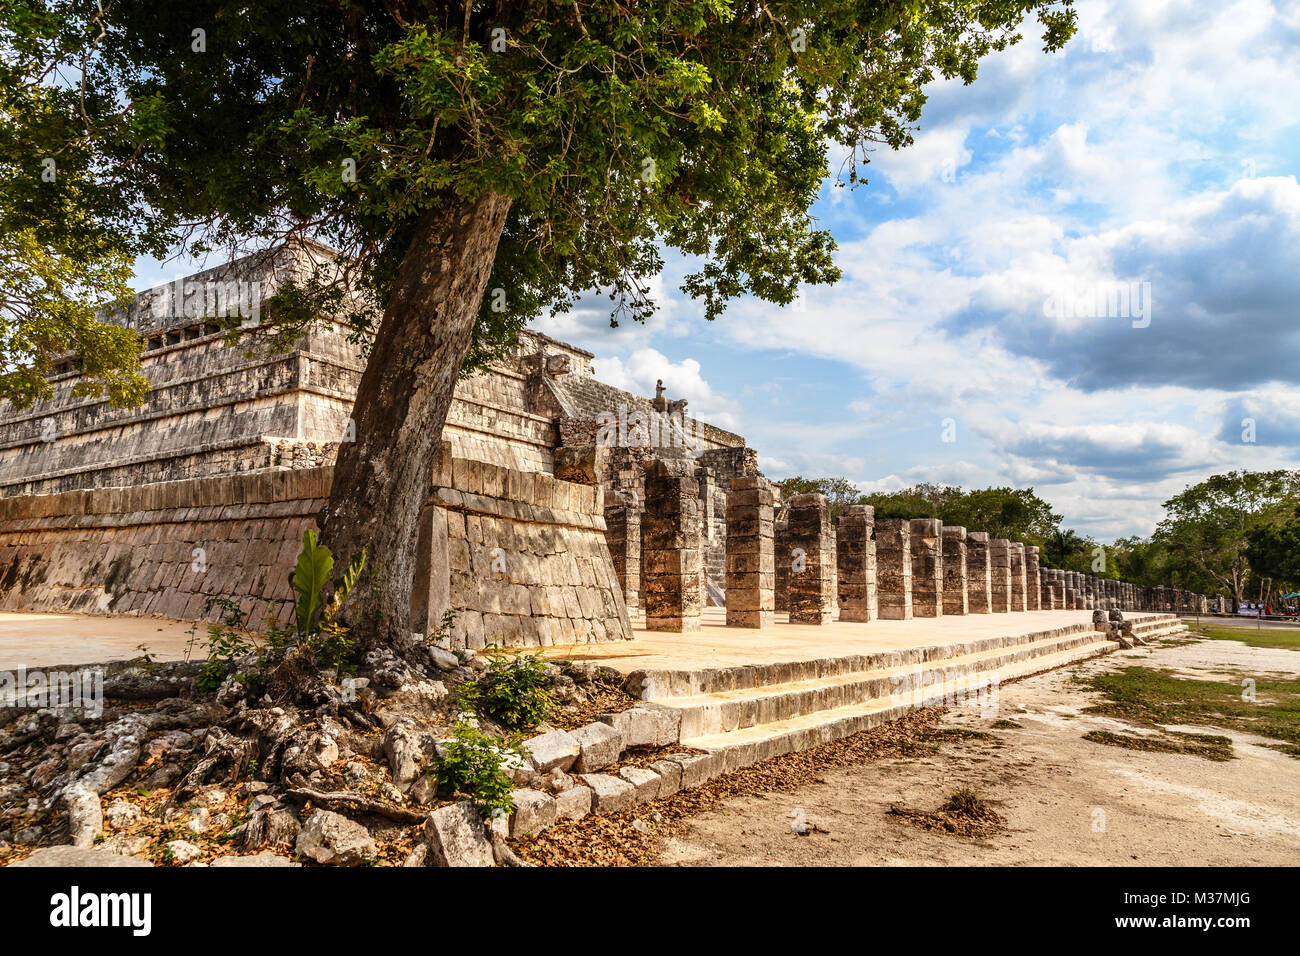 Group of thousand columns complex and tree in foreground, Chichen Itza archaeological site, Yucatan, Mexico - Stock Image